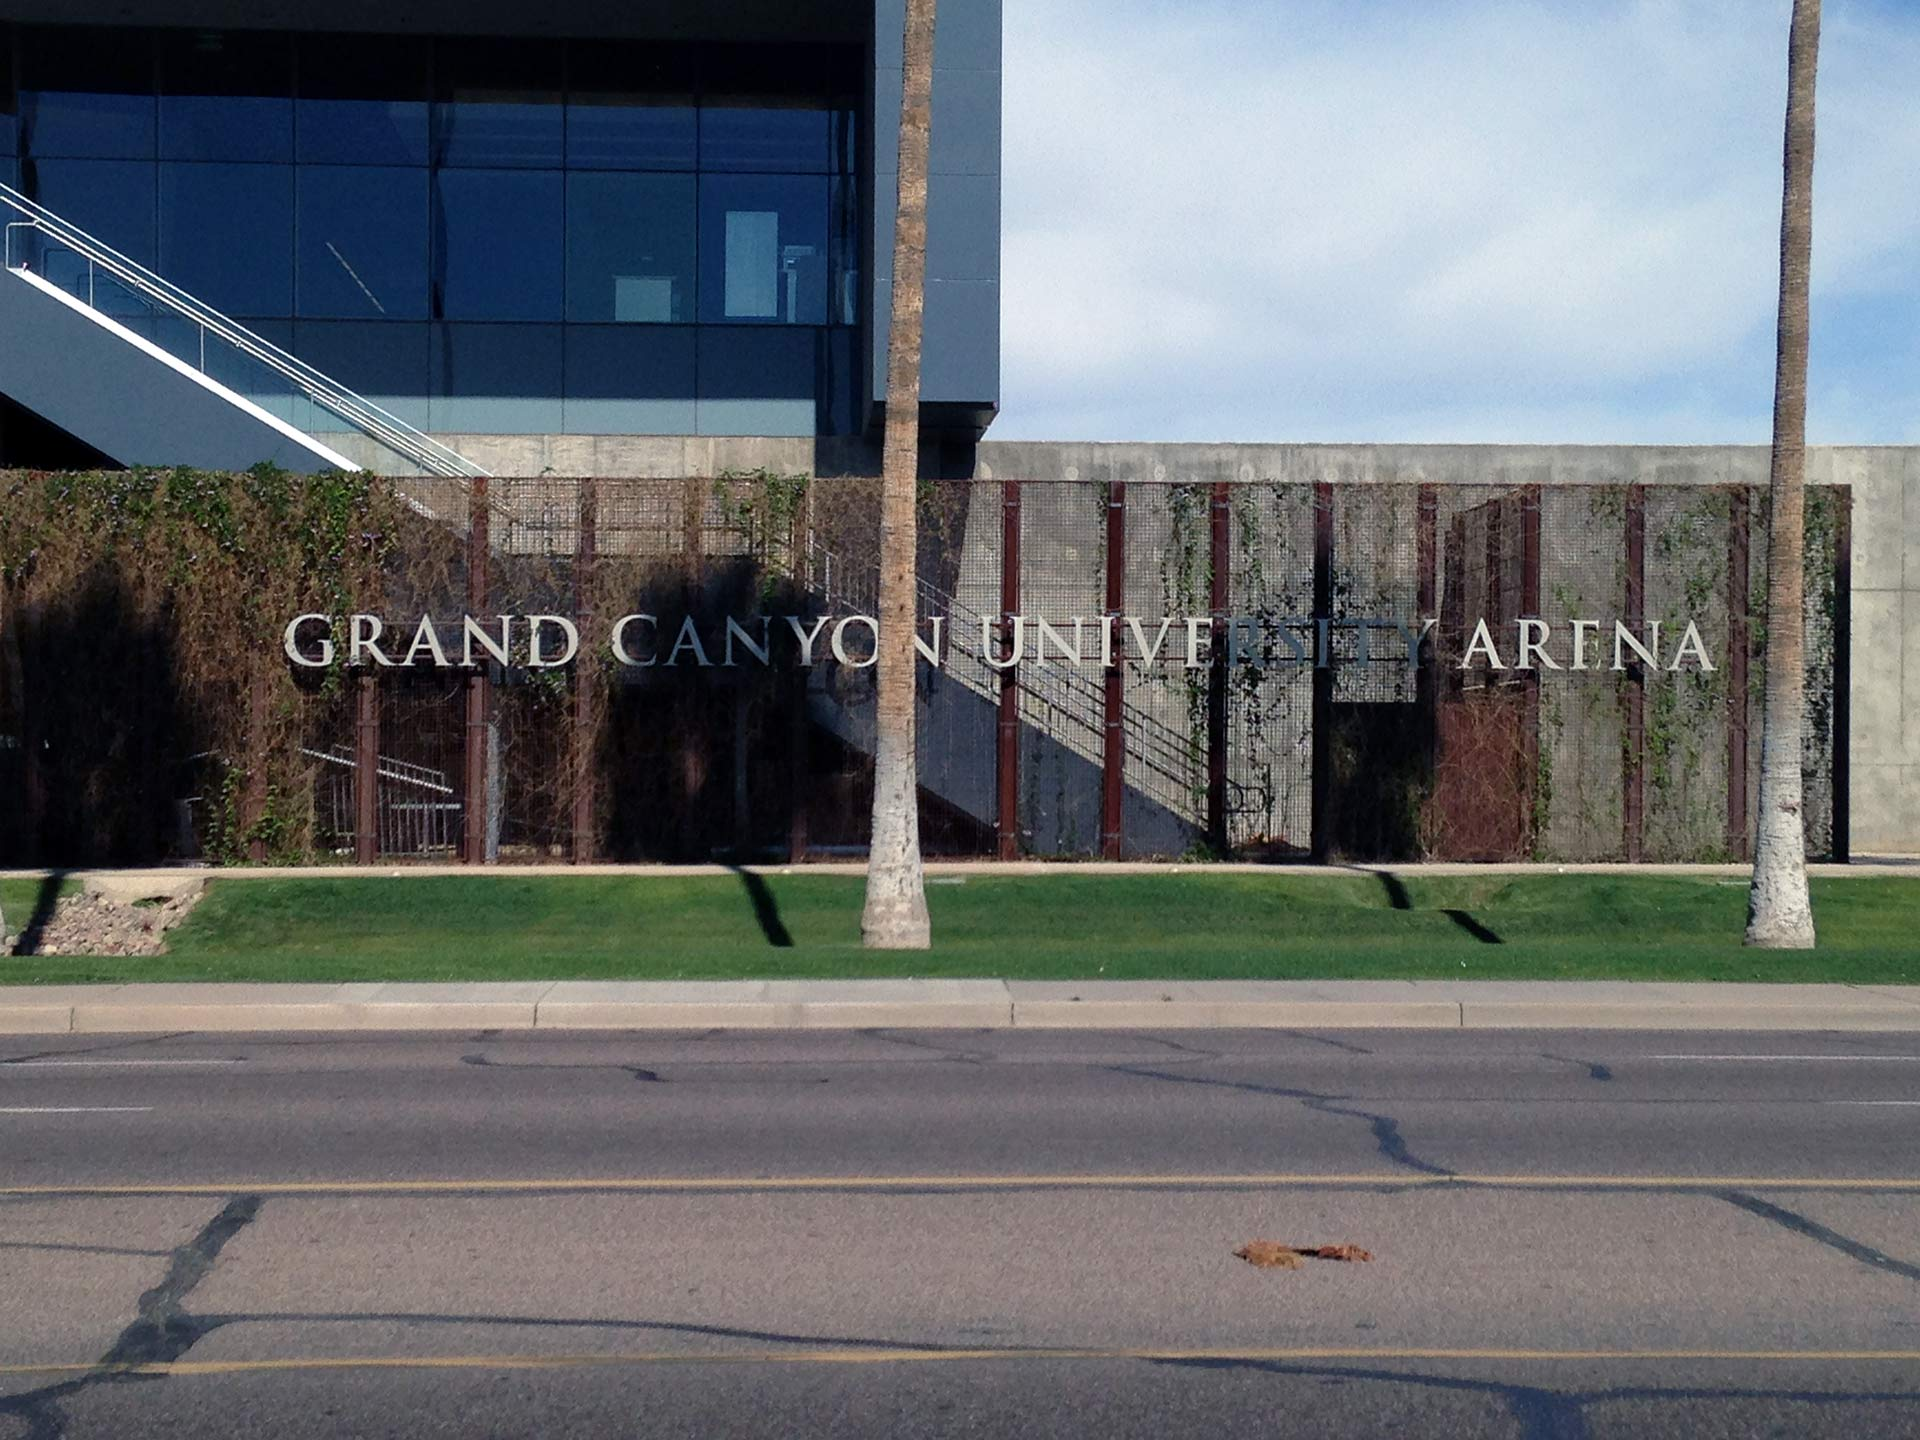 grand canyon university campus sign